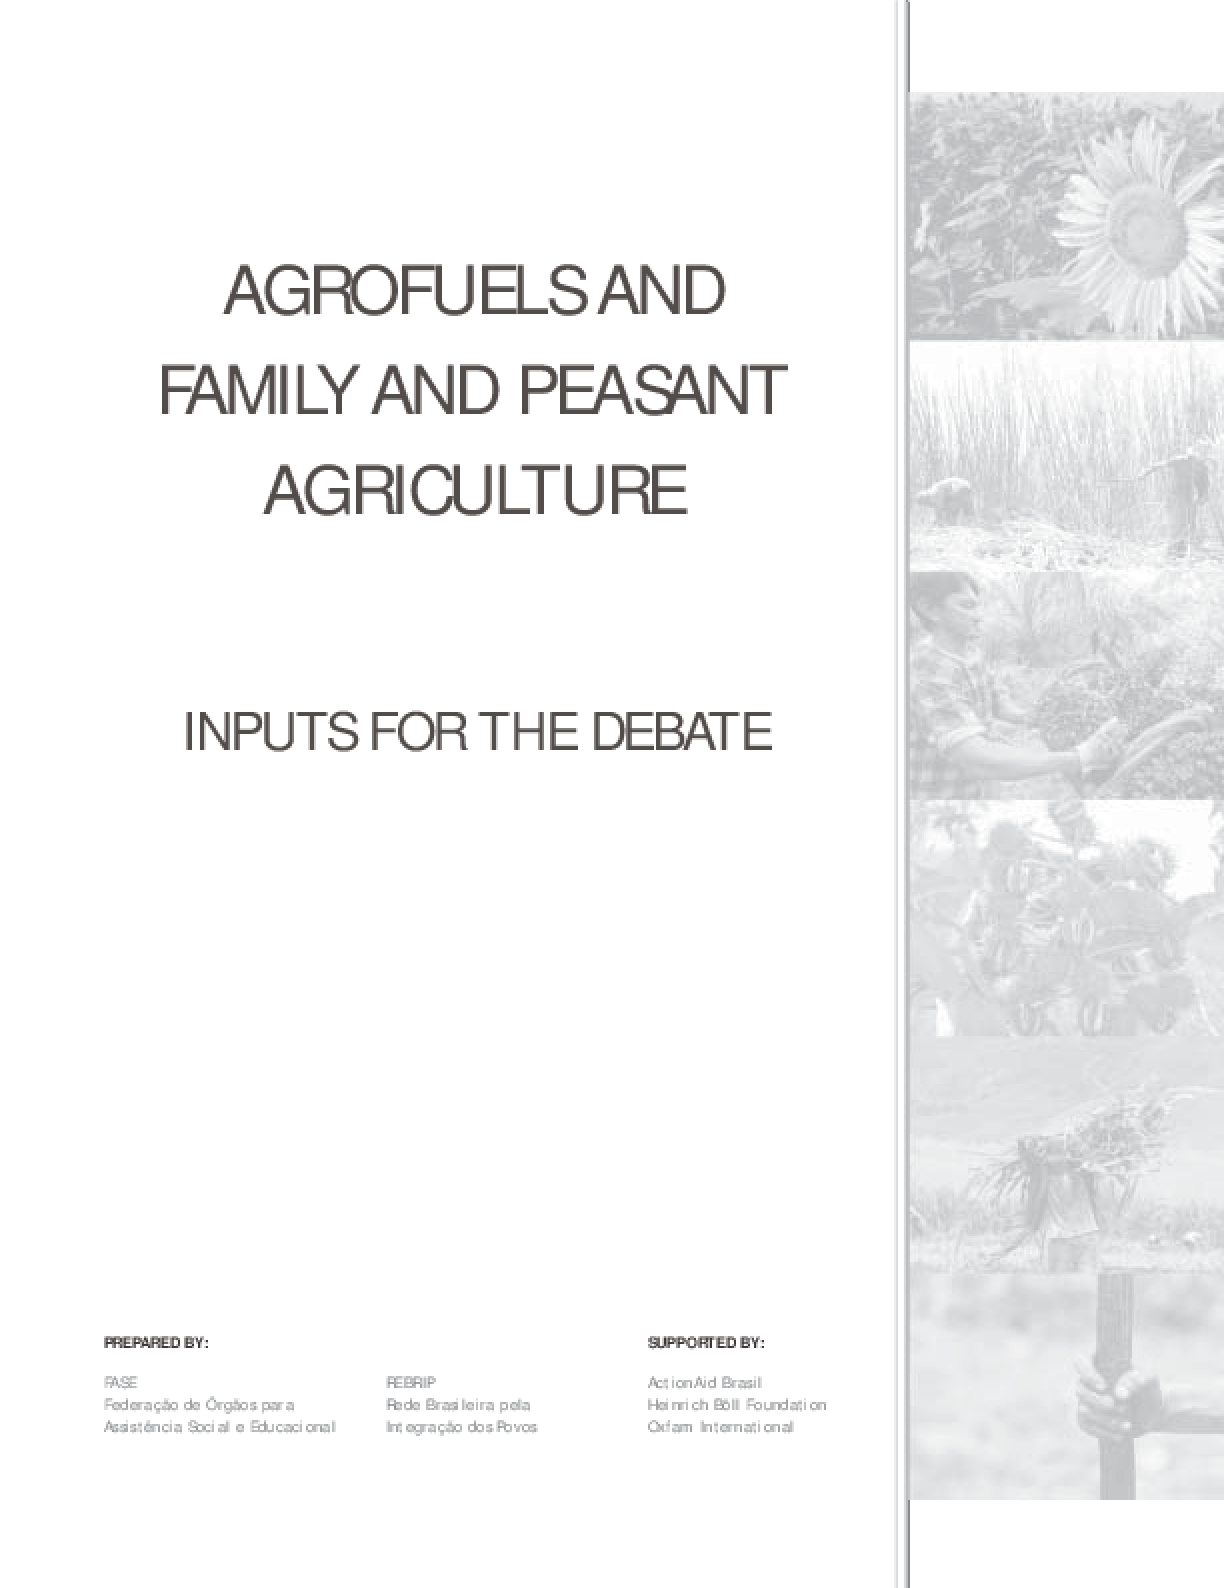 Agrofuels and Family and Peasant Agriculture: Inputs for the debate